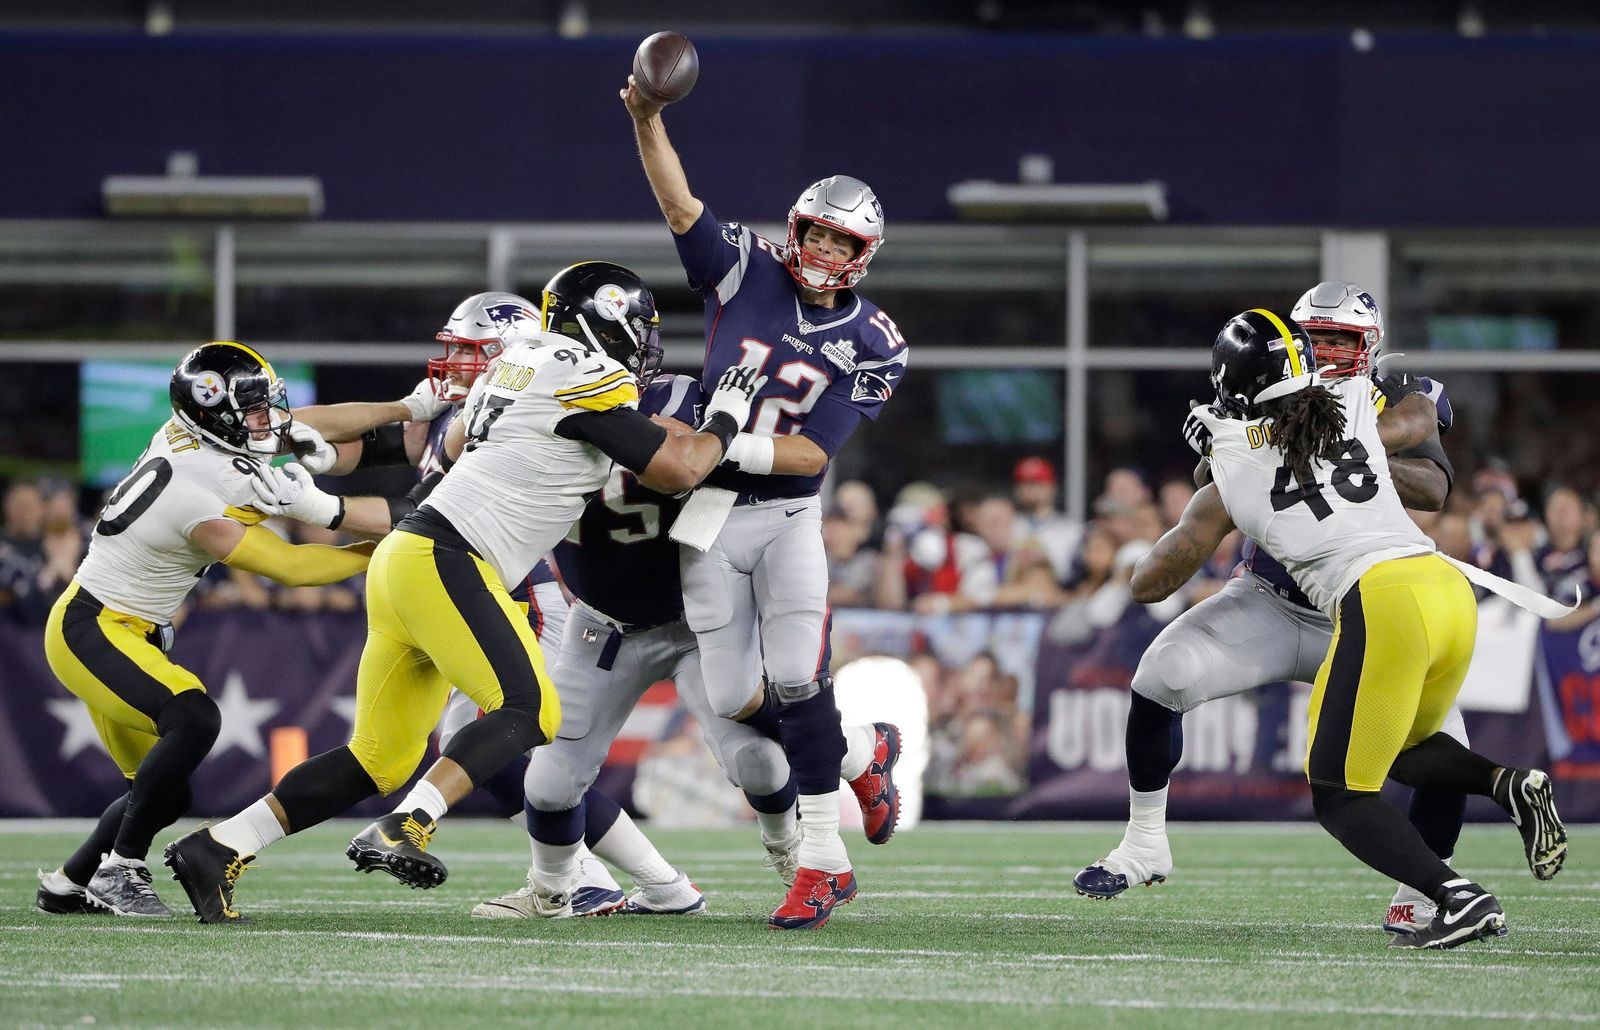 New England Patriots quarterback Tom Brady passes under pressure from Pittsburgh Steelers defenders T.J. Watt (90), Cameron Heyward (97) and Bud Dupree (48) in the first half an NFL football game, Sunday, Sept. 8, 2019, in Foxborough, Mass. (AP Photo/Steven Senne)